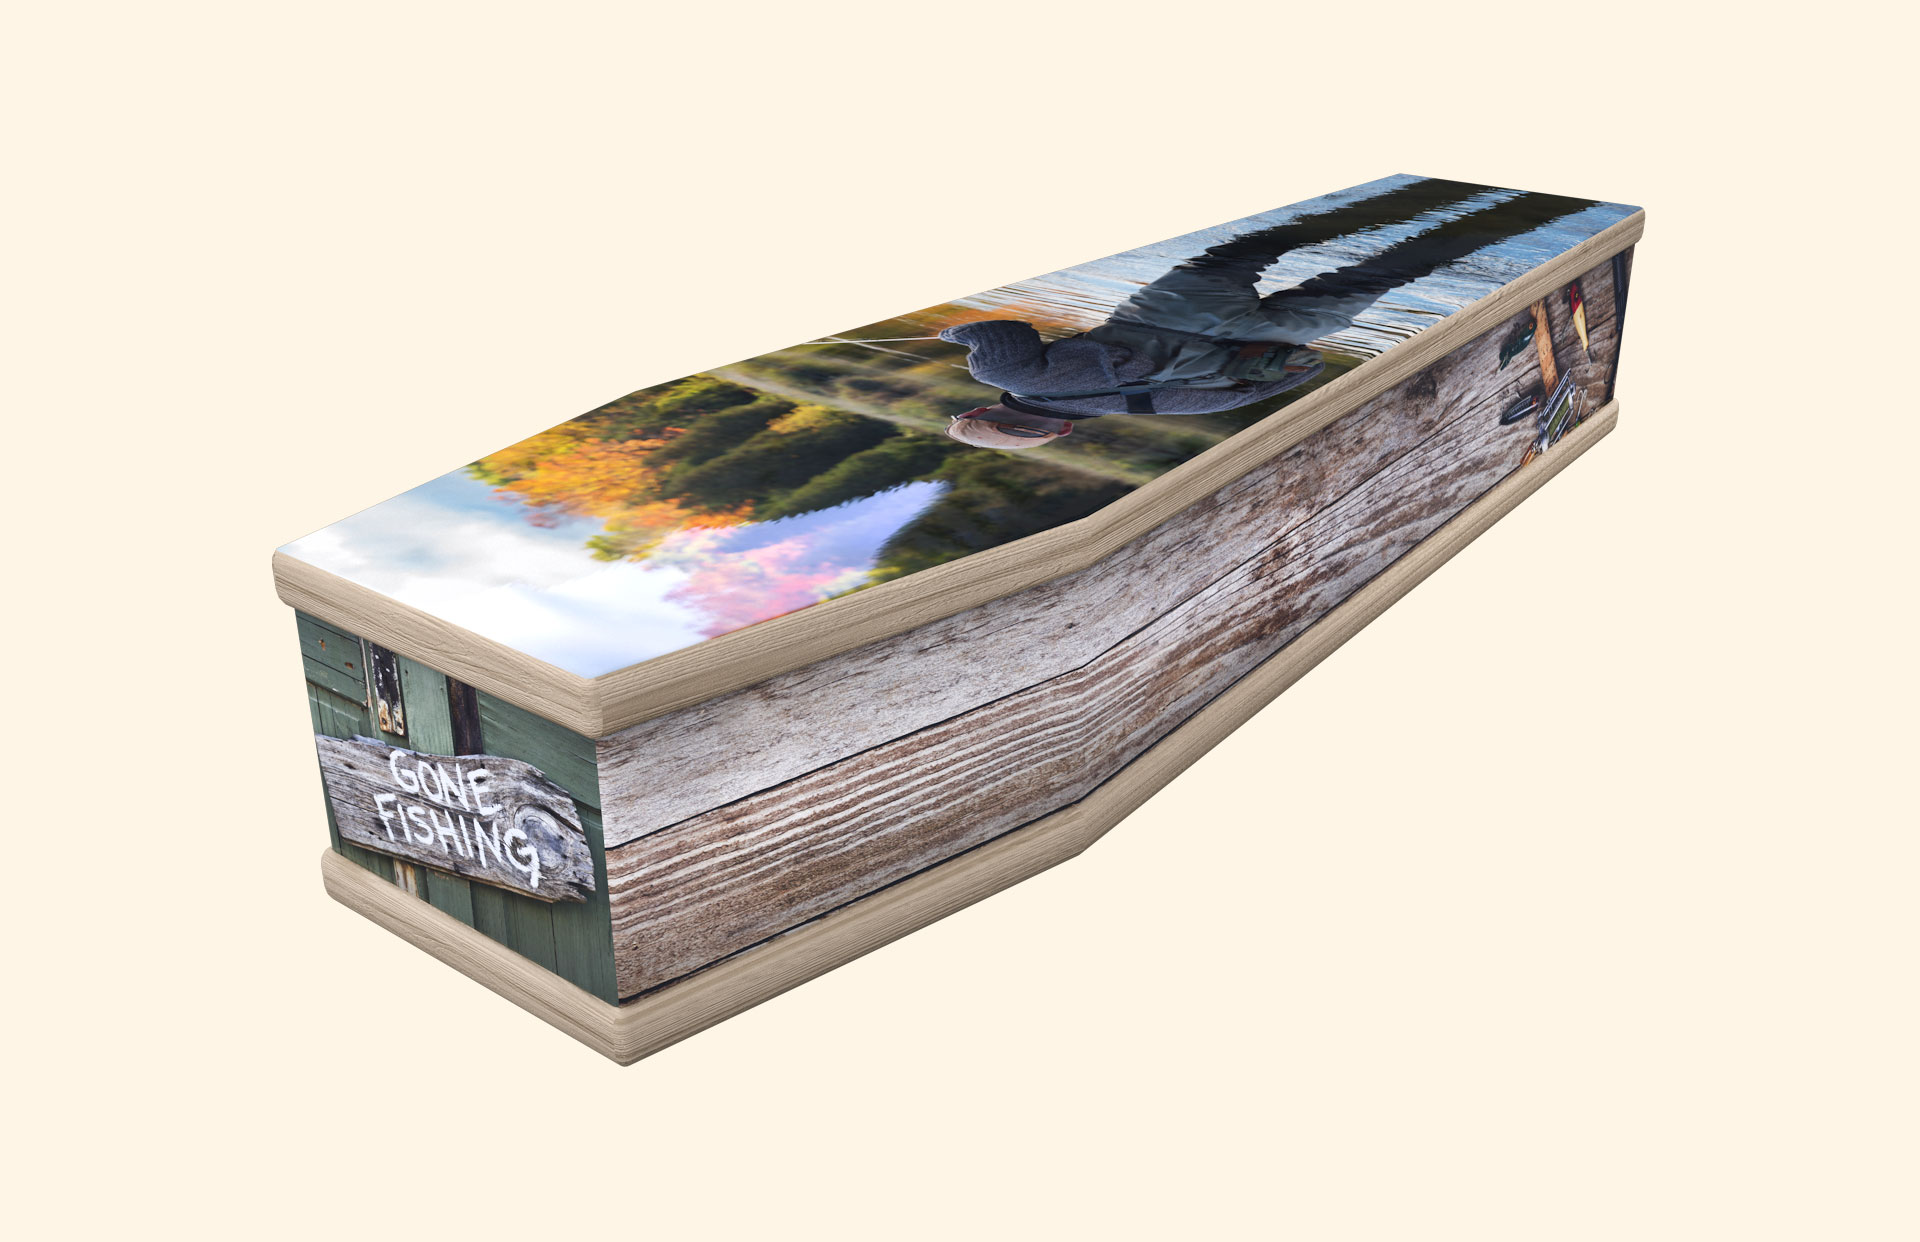 Fishing Tackle classic coffin